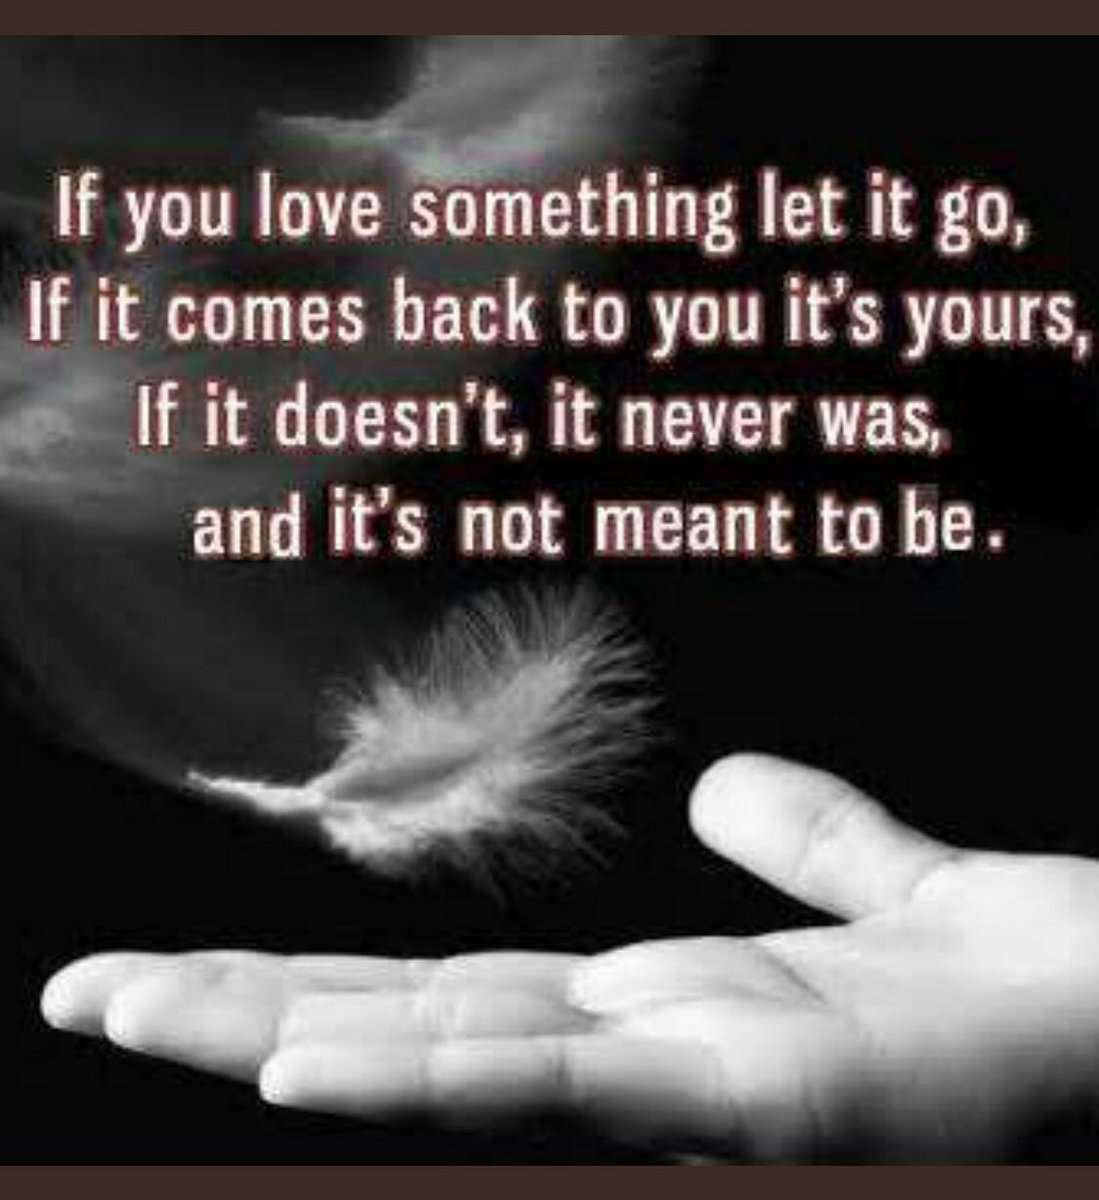 Inspirational Quotes On Twitter If You Love Something Let It Go